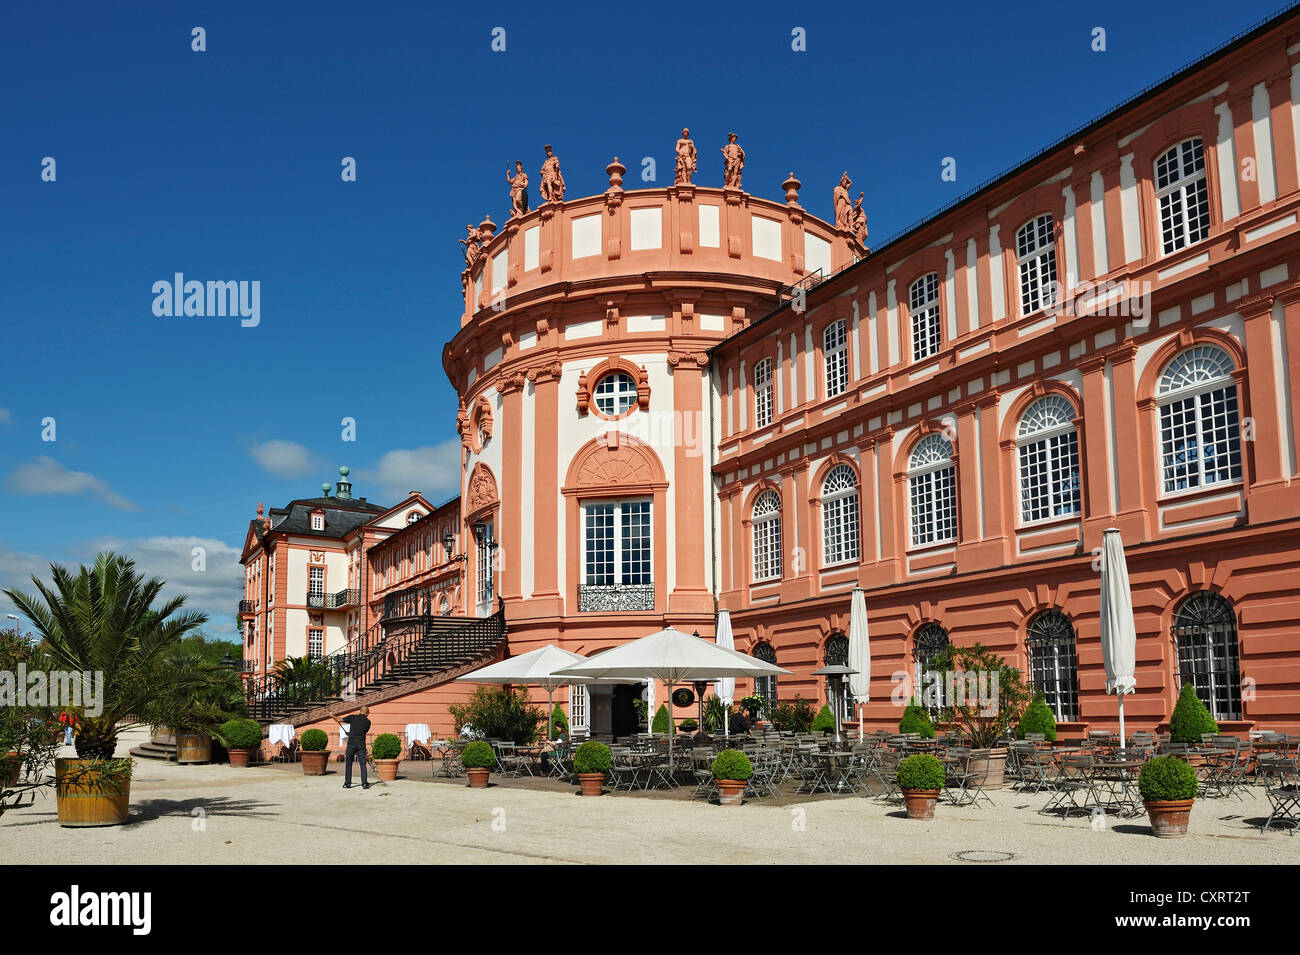 Biebrich Palace, a Baroque building with three wings, Wiesbaden, Hesse, Germany, Europe - Stock Image